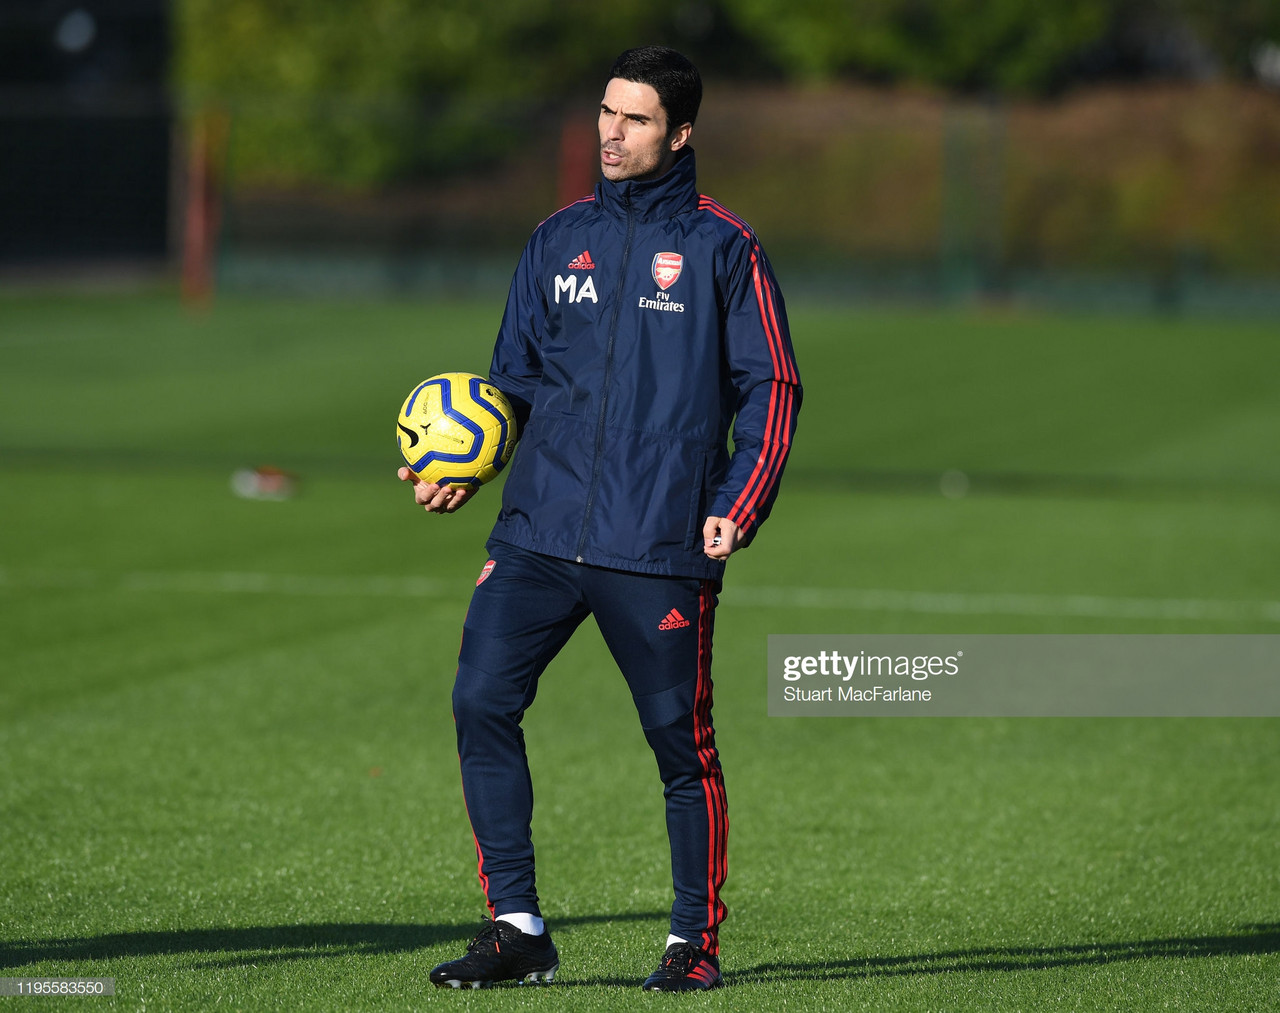 New Arsenal boss Arteta issues rallying cry